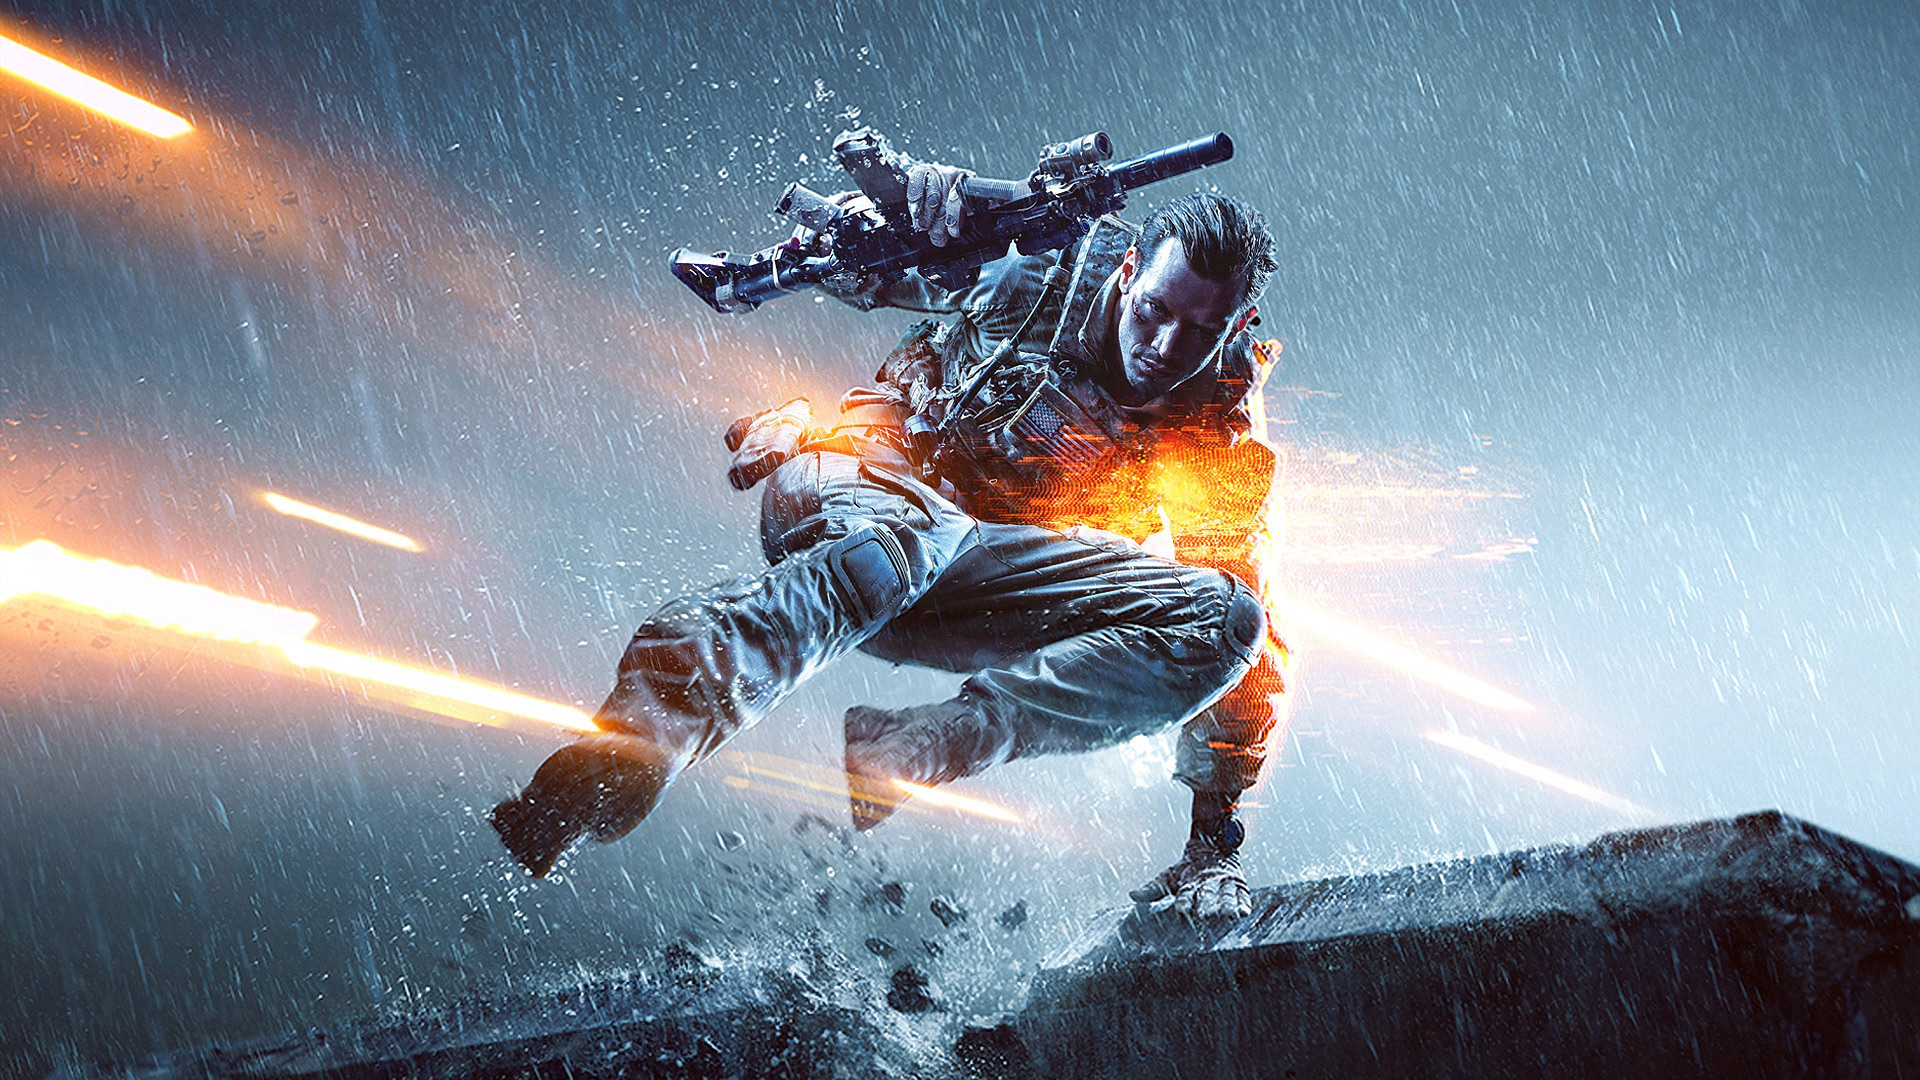 473063 Battlefield 5 Devs Are Sure Fans Wont Expect Impending Big Reveal